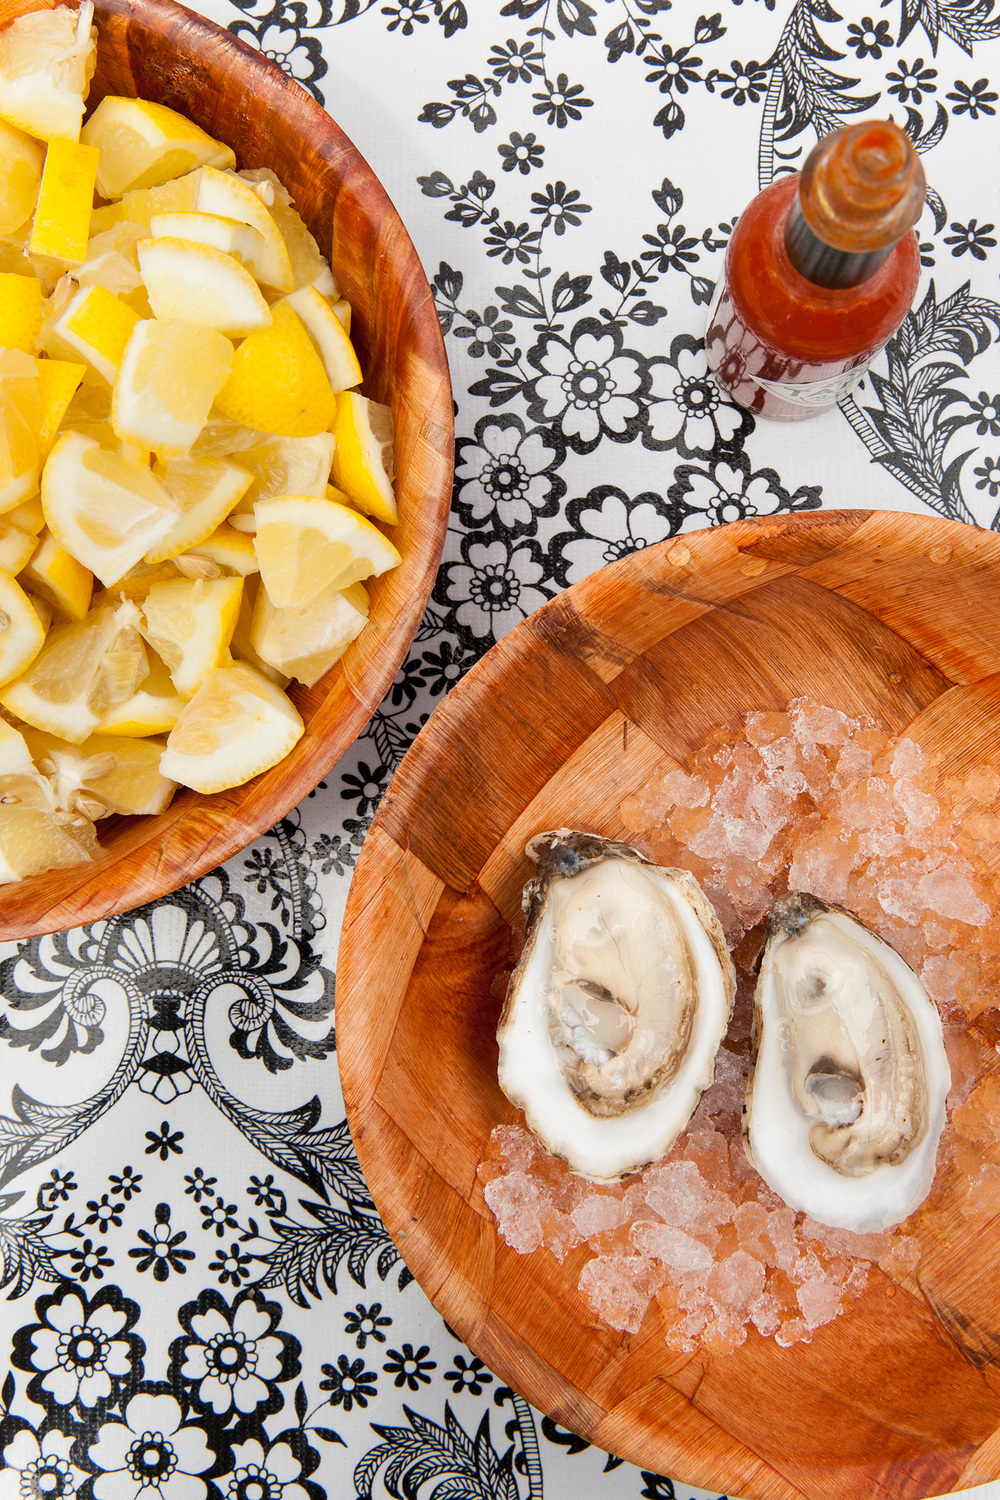 Copy of new york oyster food photographer